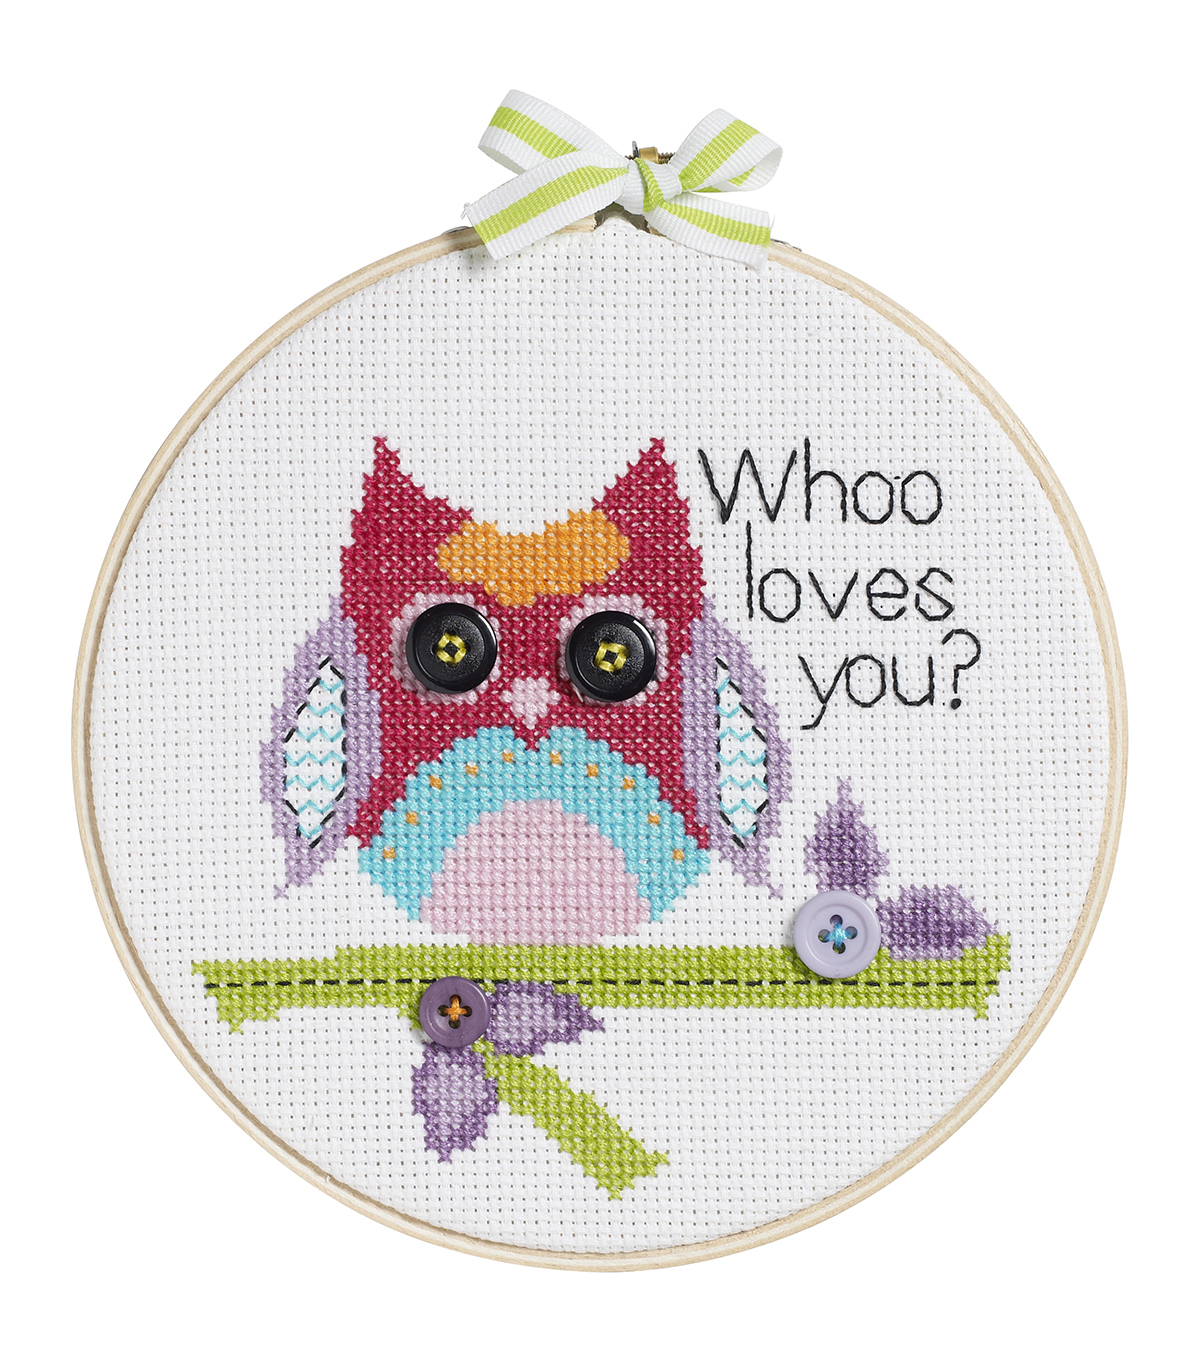 Bucilla My 1st Stitch Whoo Loves You Mini Counted Cross Stitch Kit